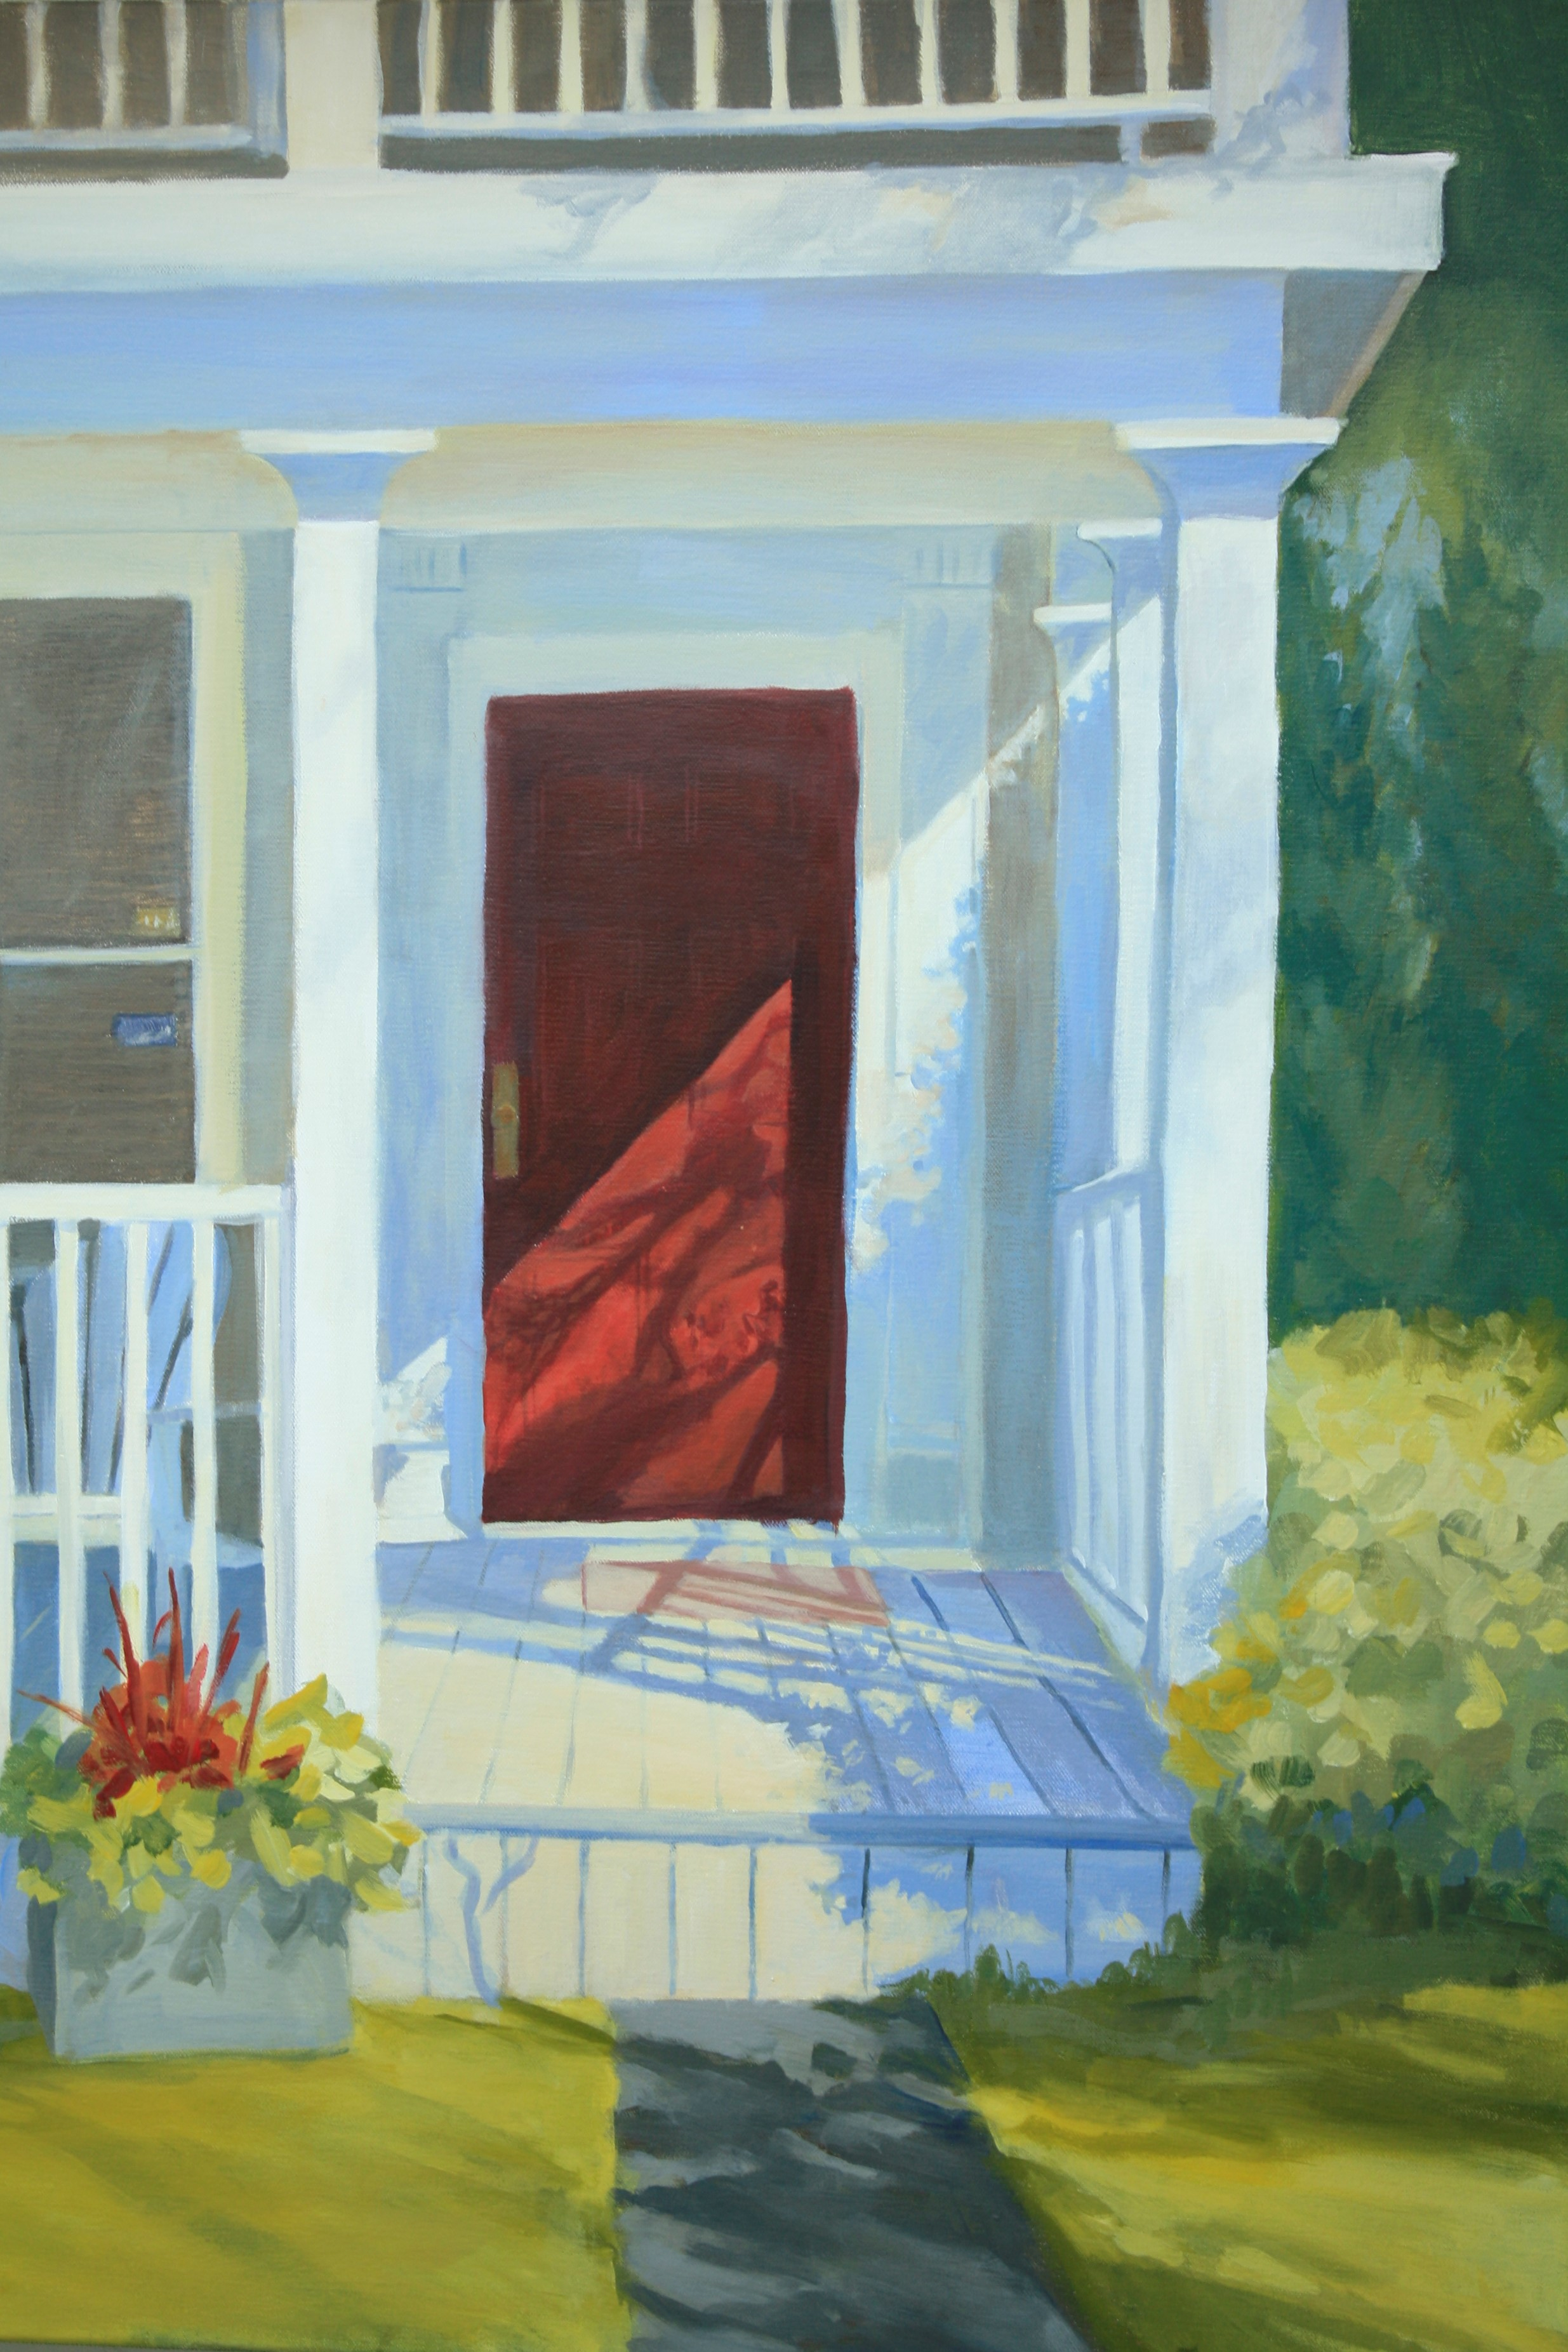 "Morning PorchSide, 36x40"", Sold"